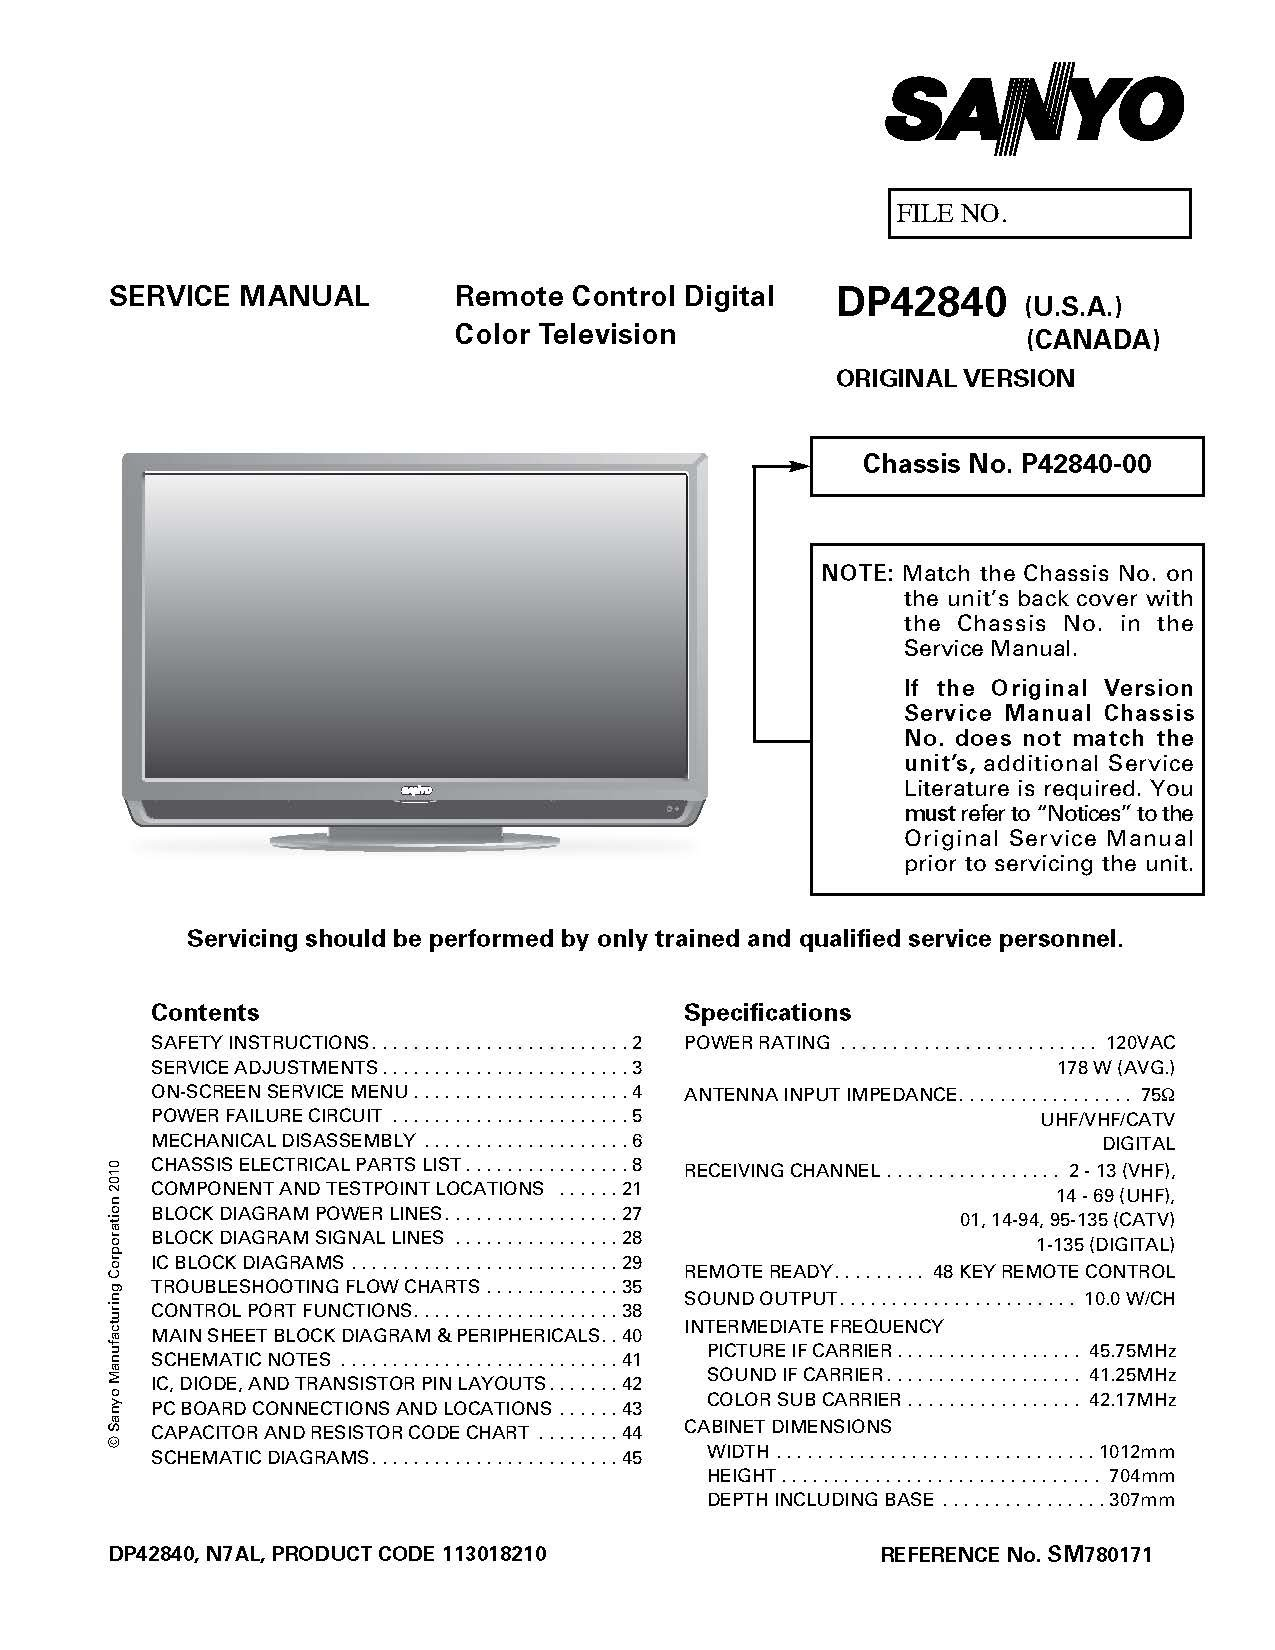 sanyo dp42840 service manual with schematics sanyo amazon com books rh amazon com DP42840 Parts Sanyo DP42840 Troubleshooting